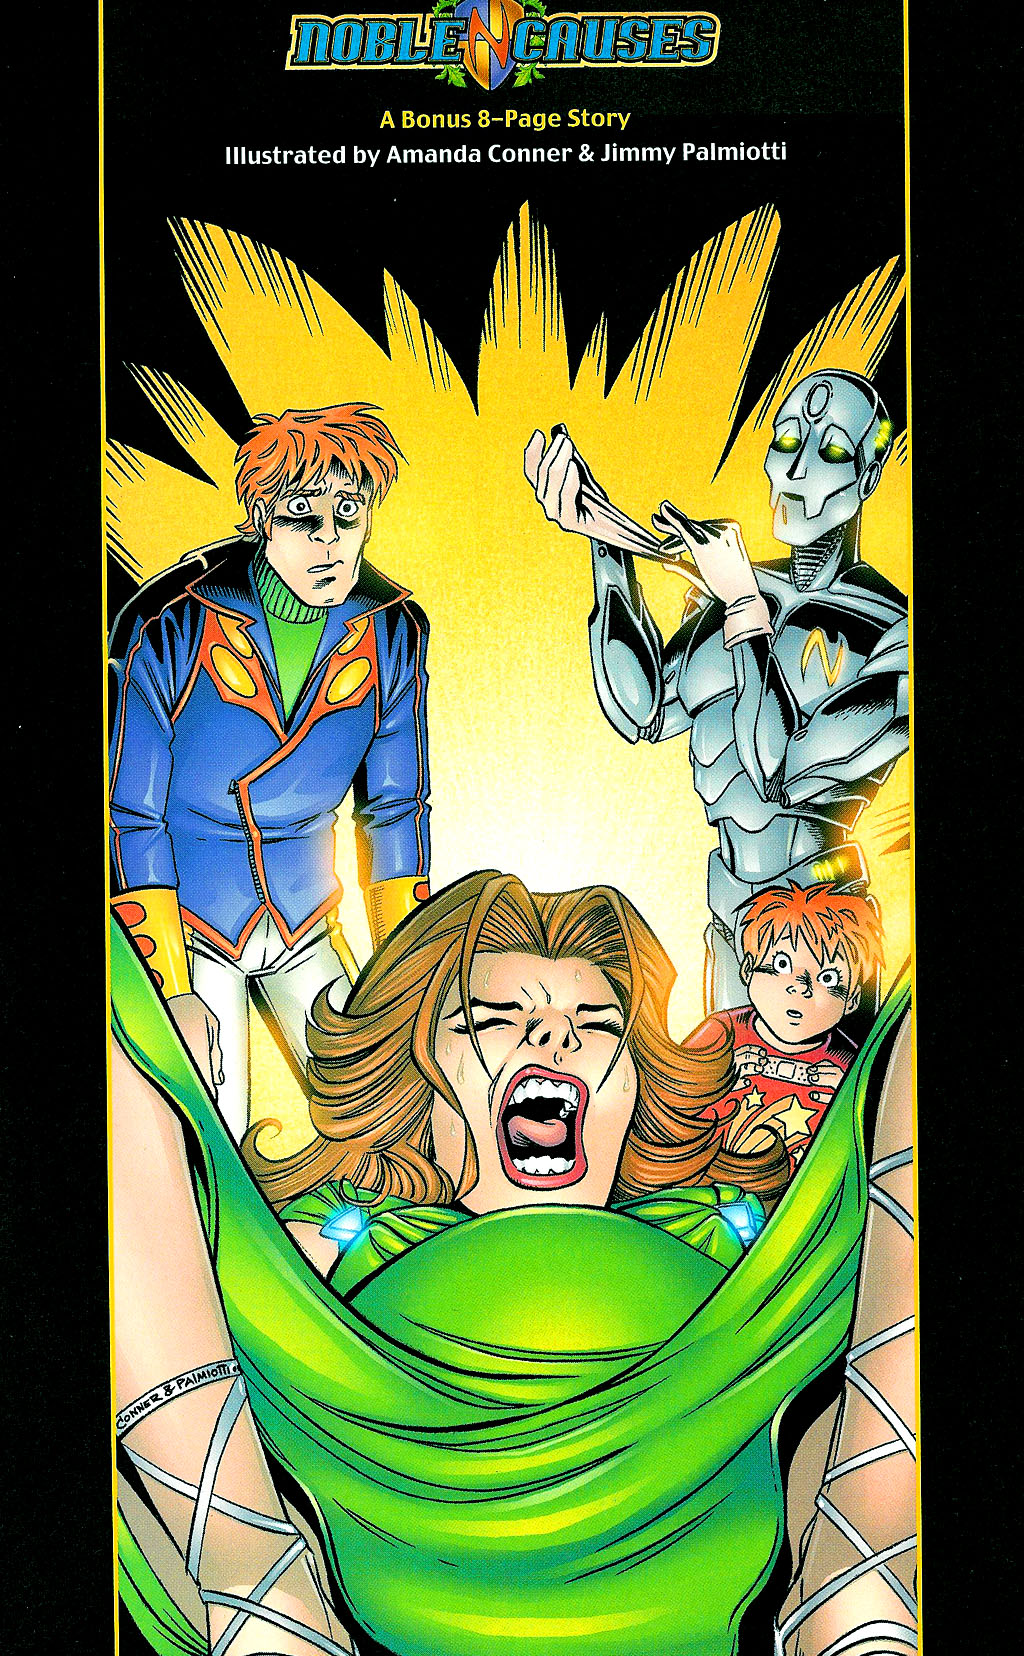 Read online Noble Causes (2002) comic -  Issue #1 - 19